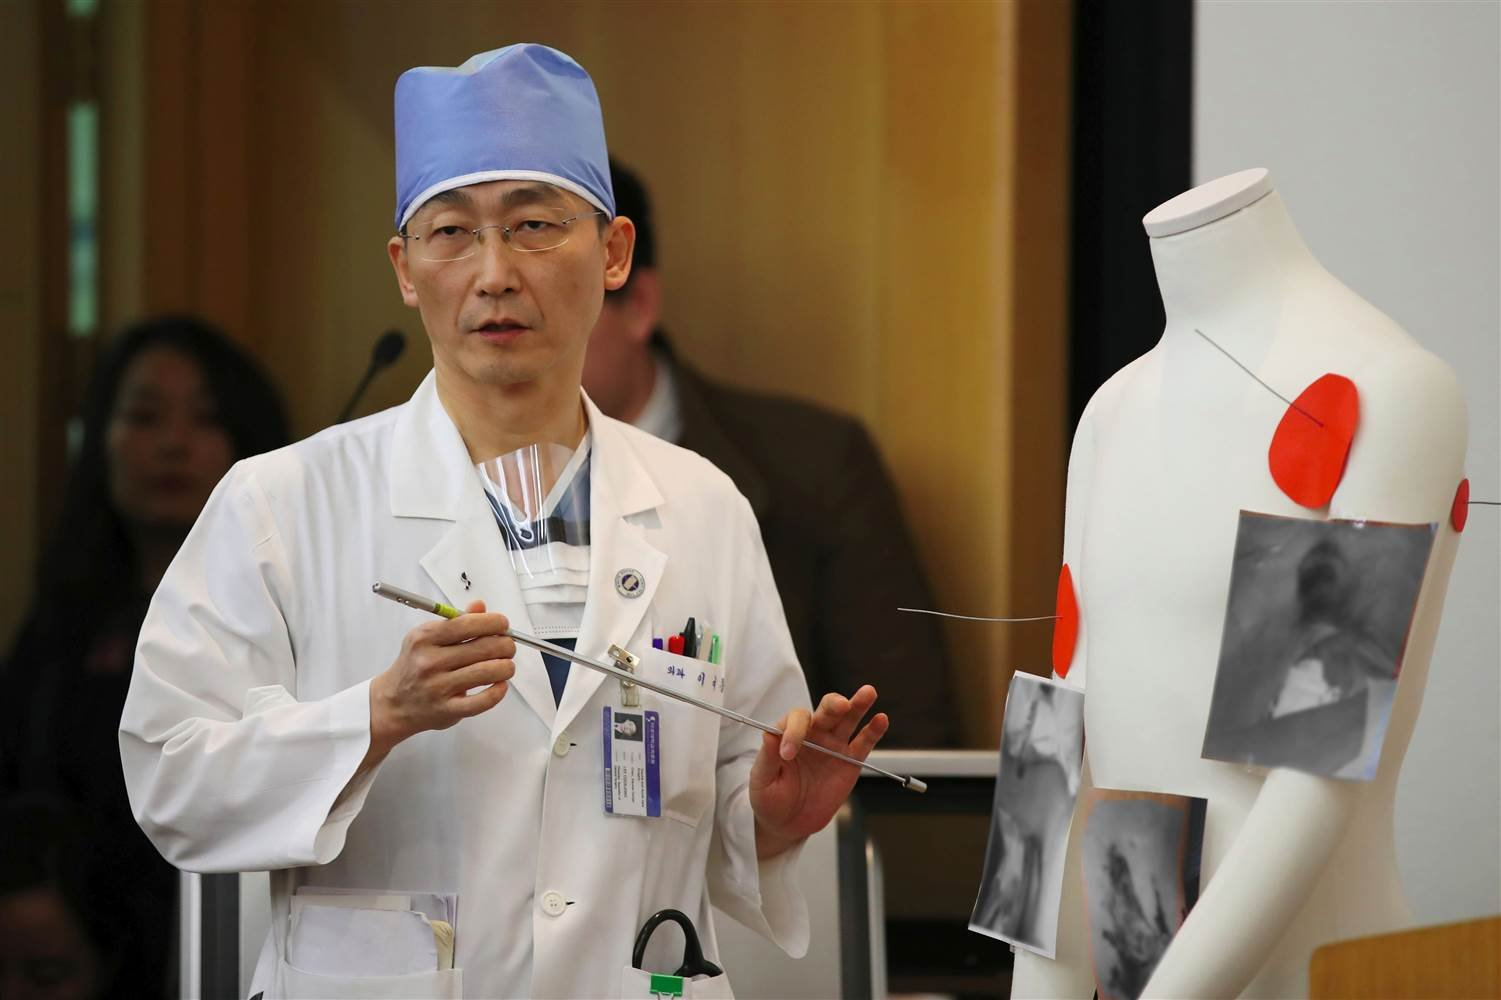 South Korean doctor Lee Cook-Jong speaks about the condition of the defecting soldier.